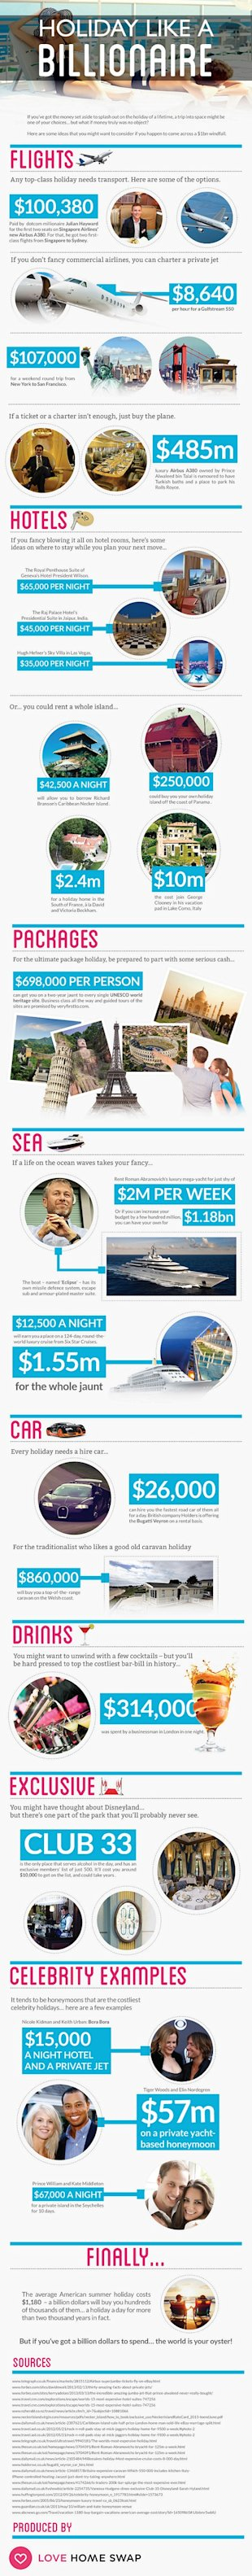 Holiday Like A Billionaire [Infographic]  image holiday like a billionaireresize